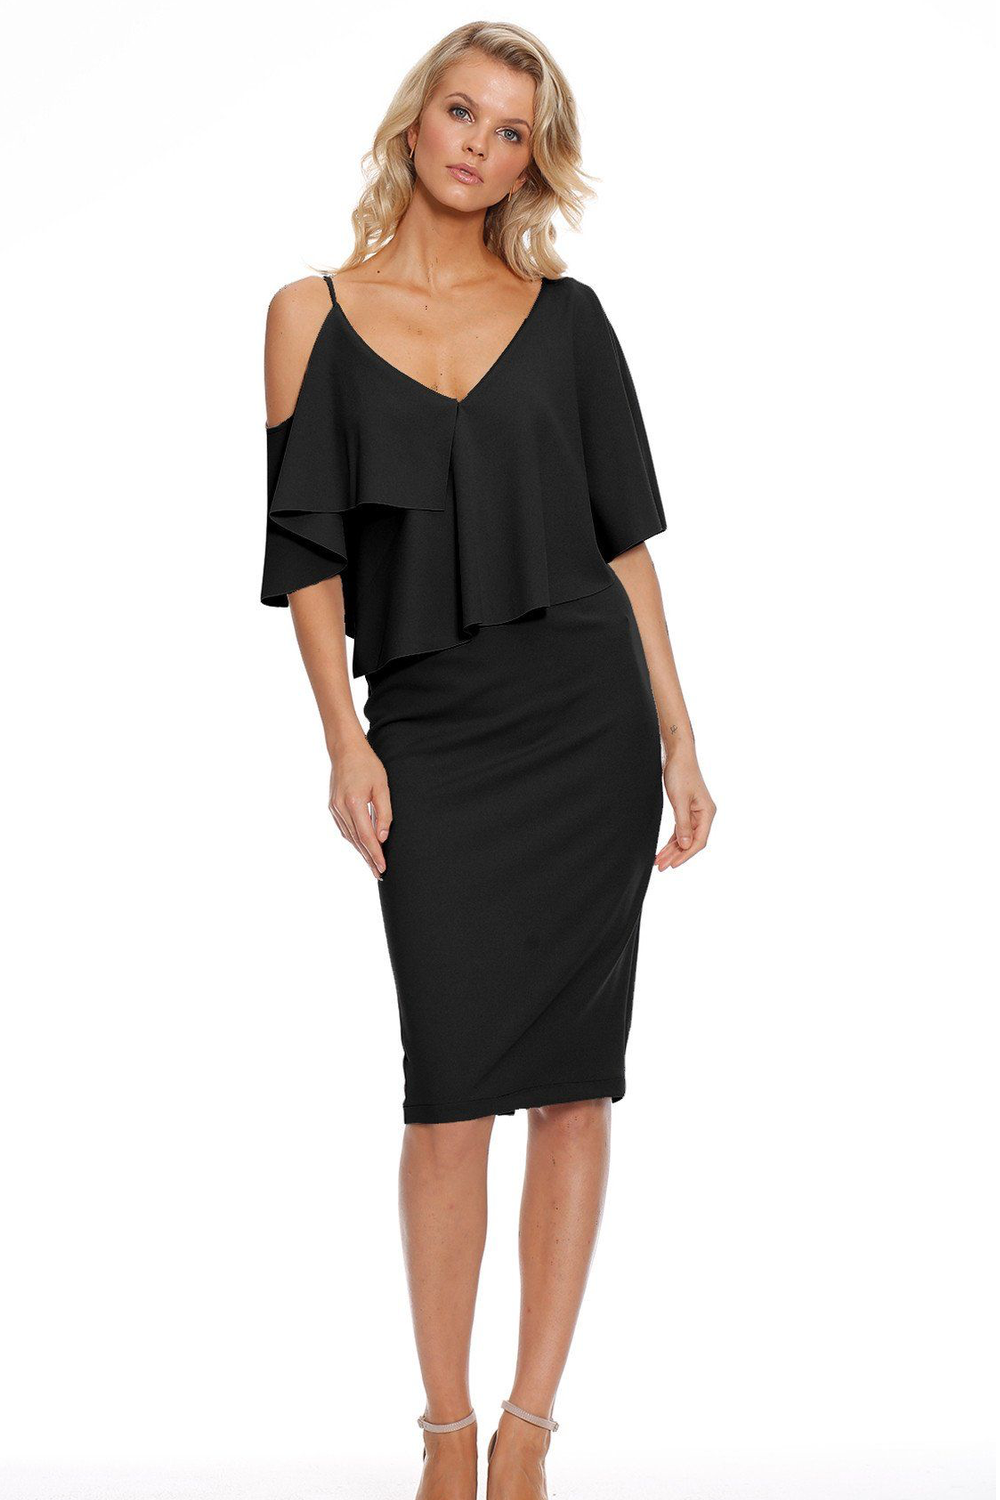 Pasduchas Felicity Midi Dress in Black